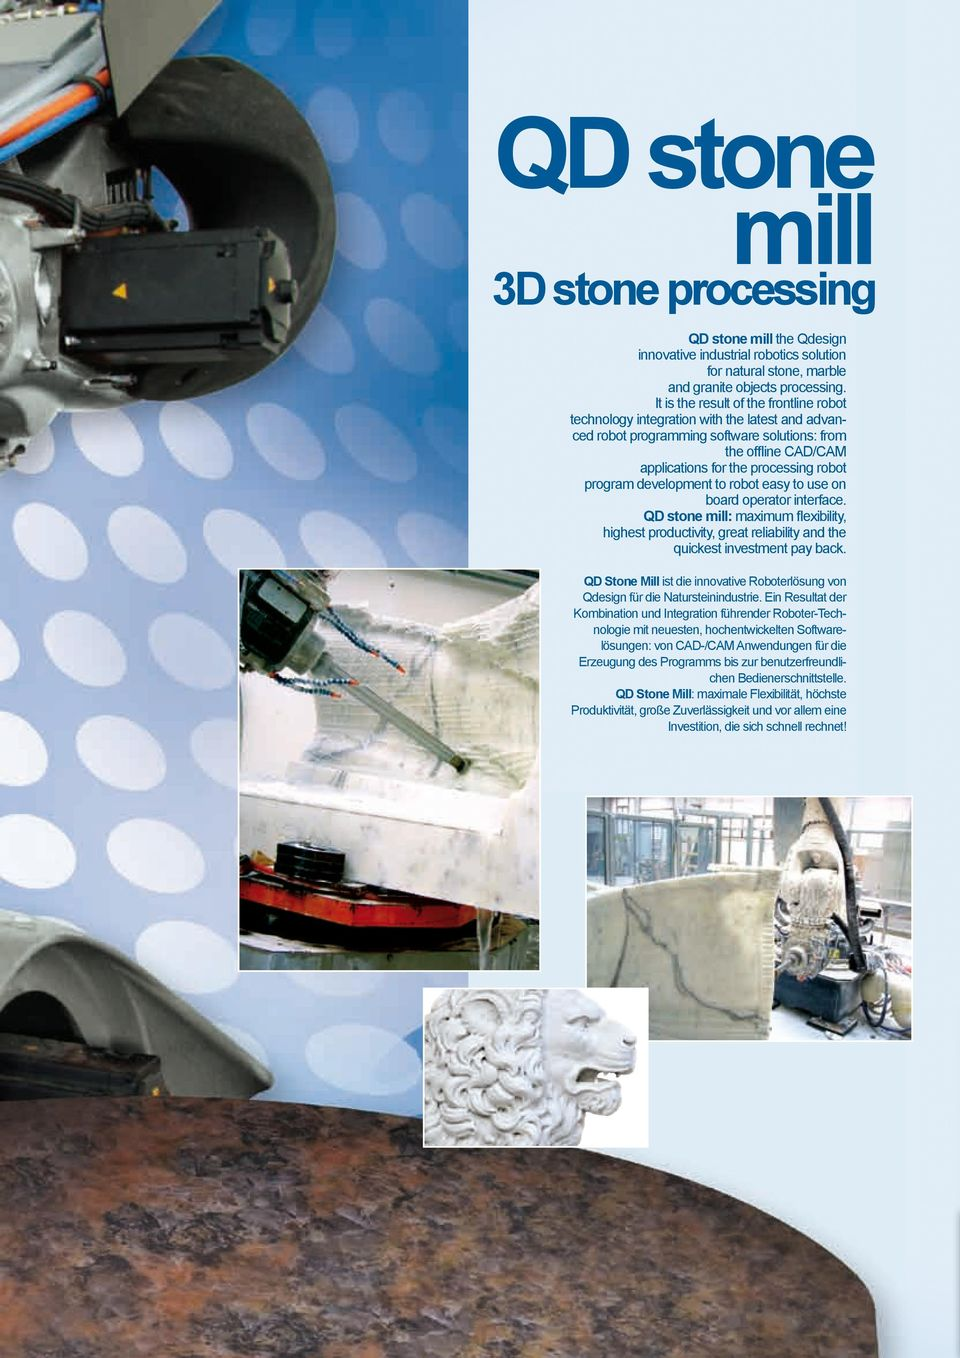 program development to robot easy to use on board operator interface. QD stone mill: maximum flexibility, highest productivity, great reliability and the quickest investment pay back.